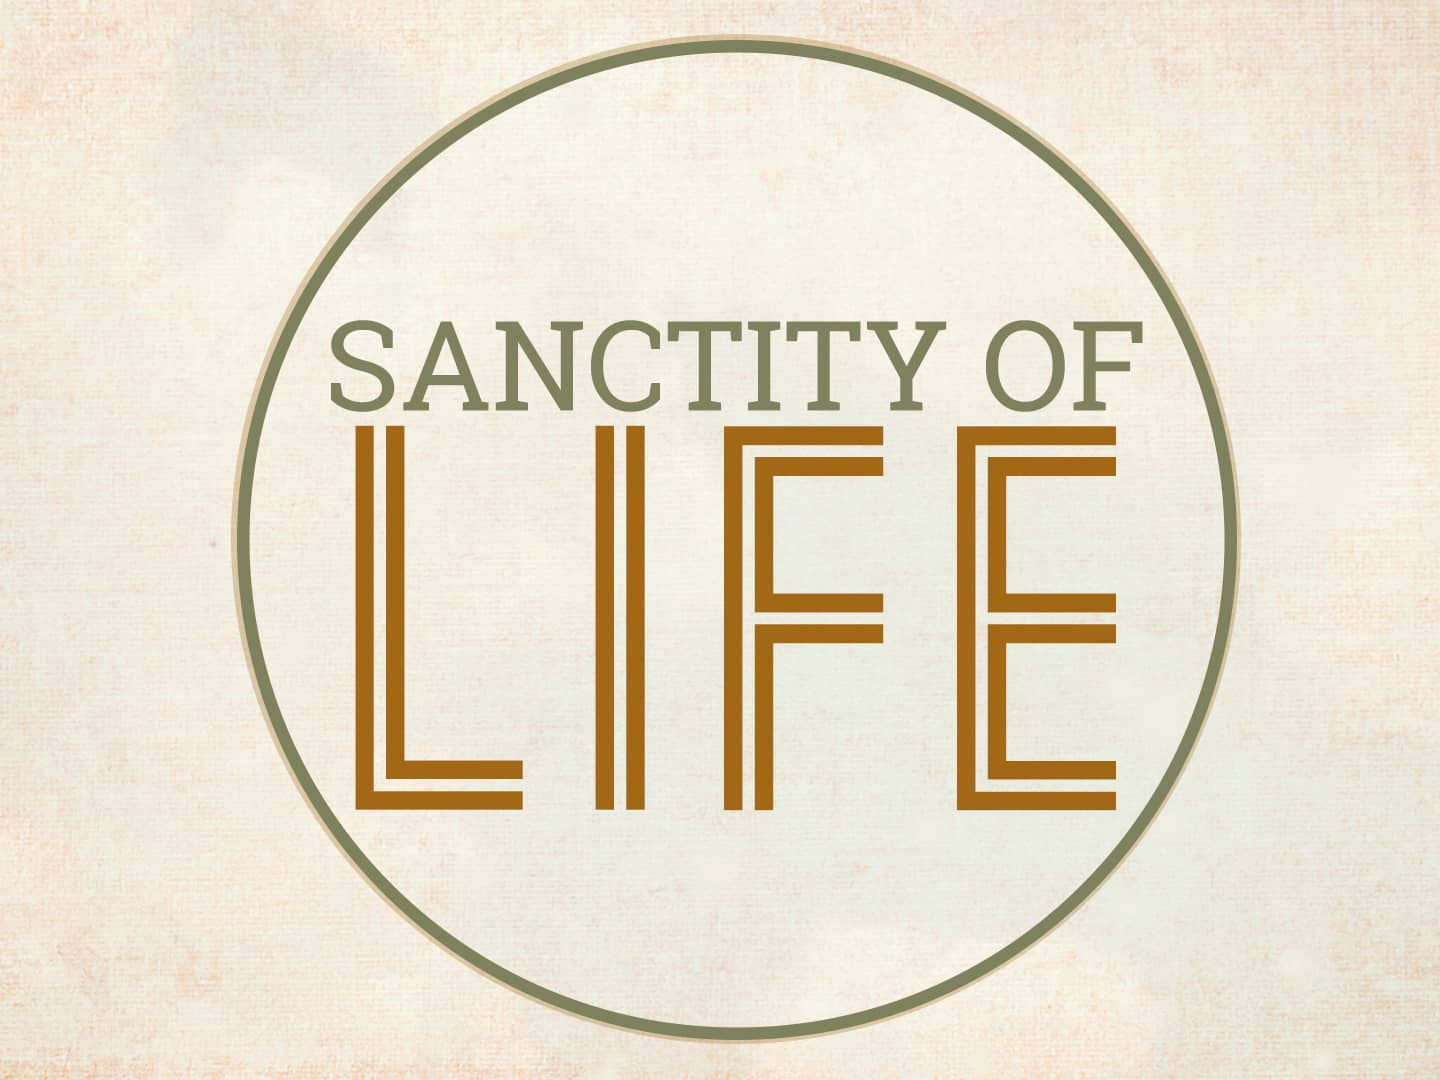 Introduction to the Sanctity of Life